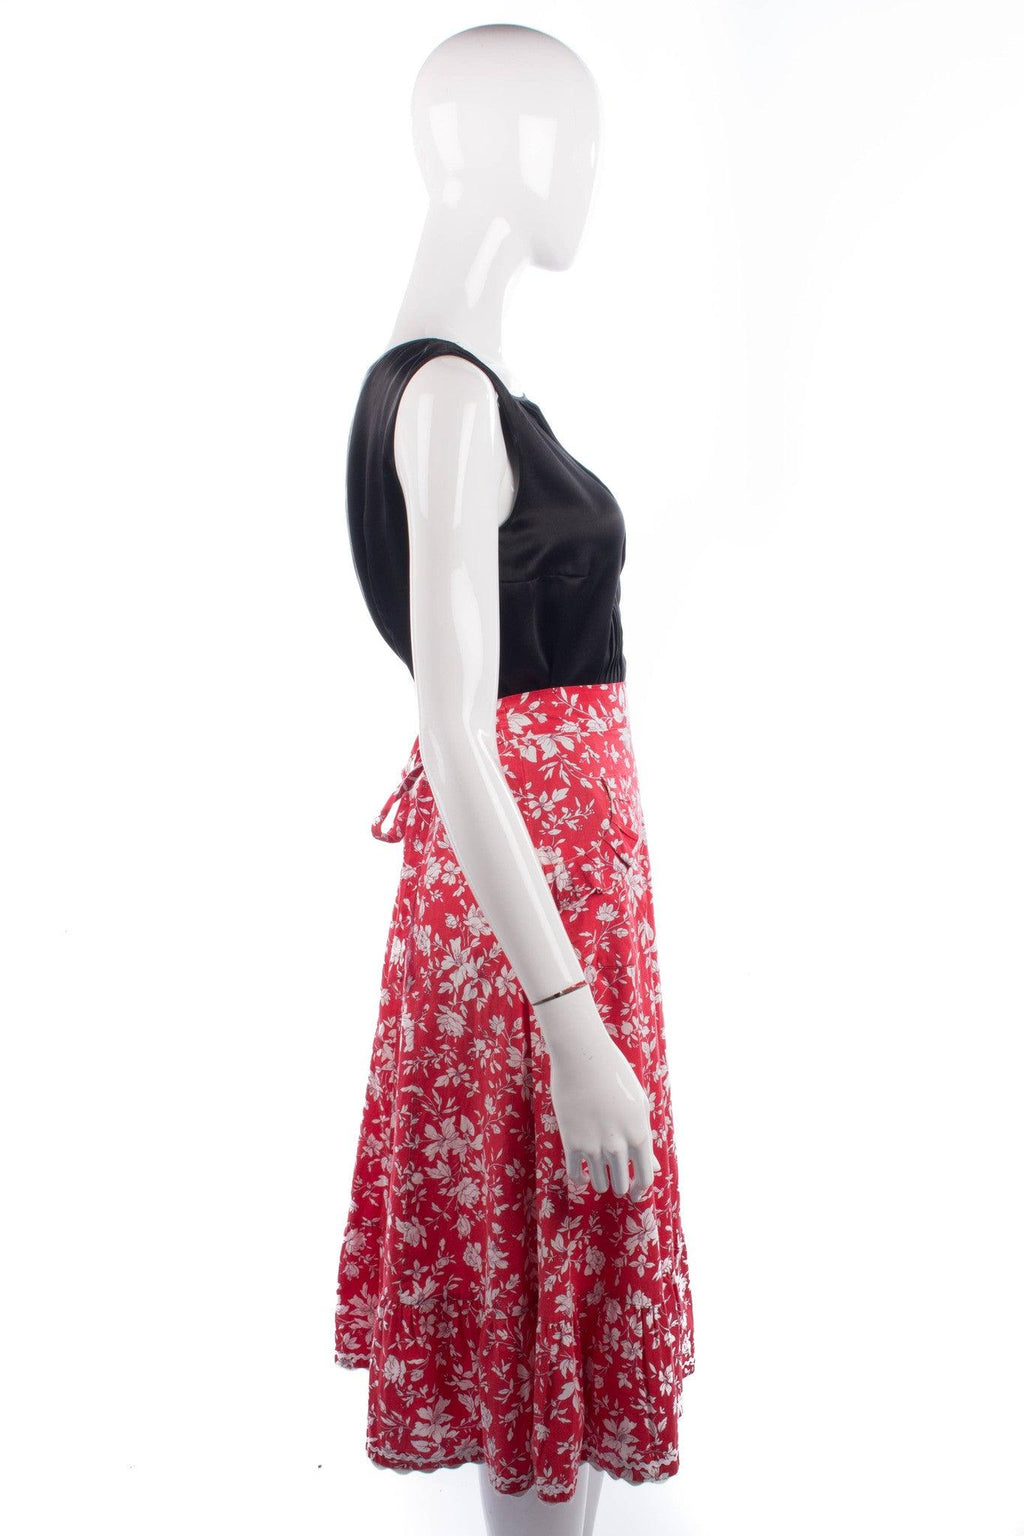 Vintage cotton summer skirt with pocket details